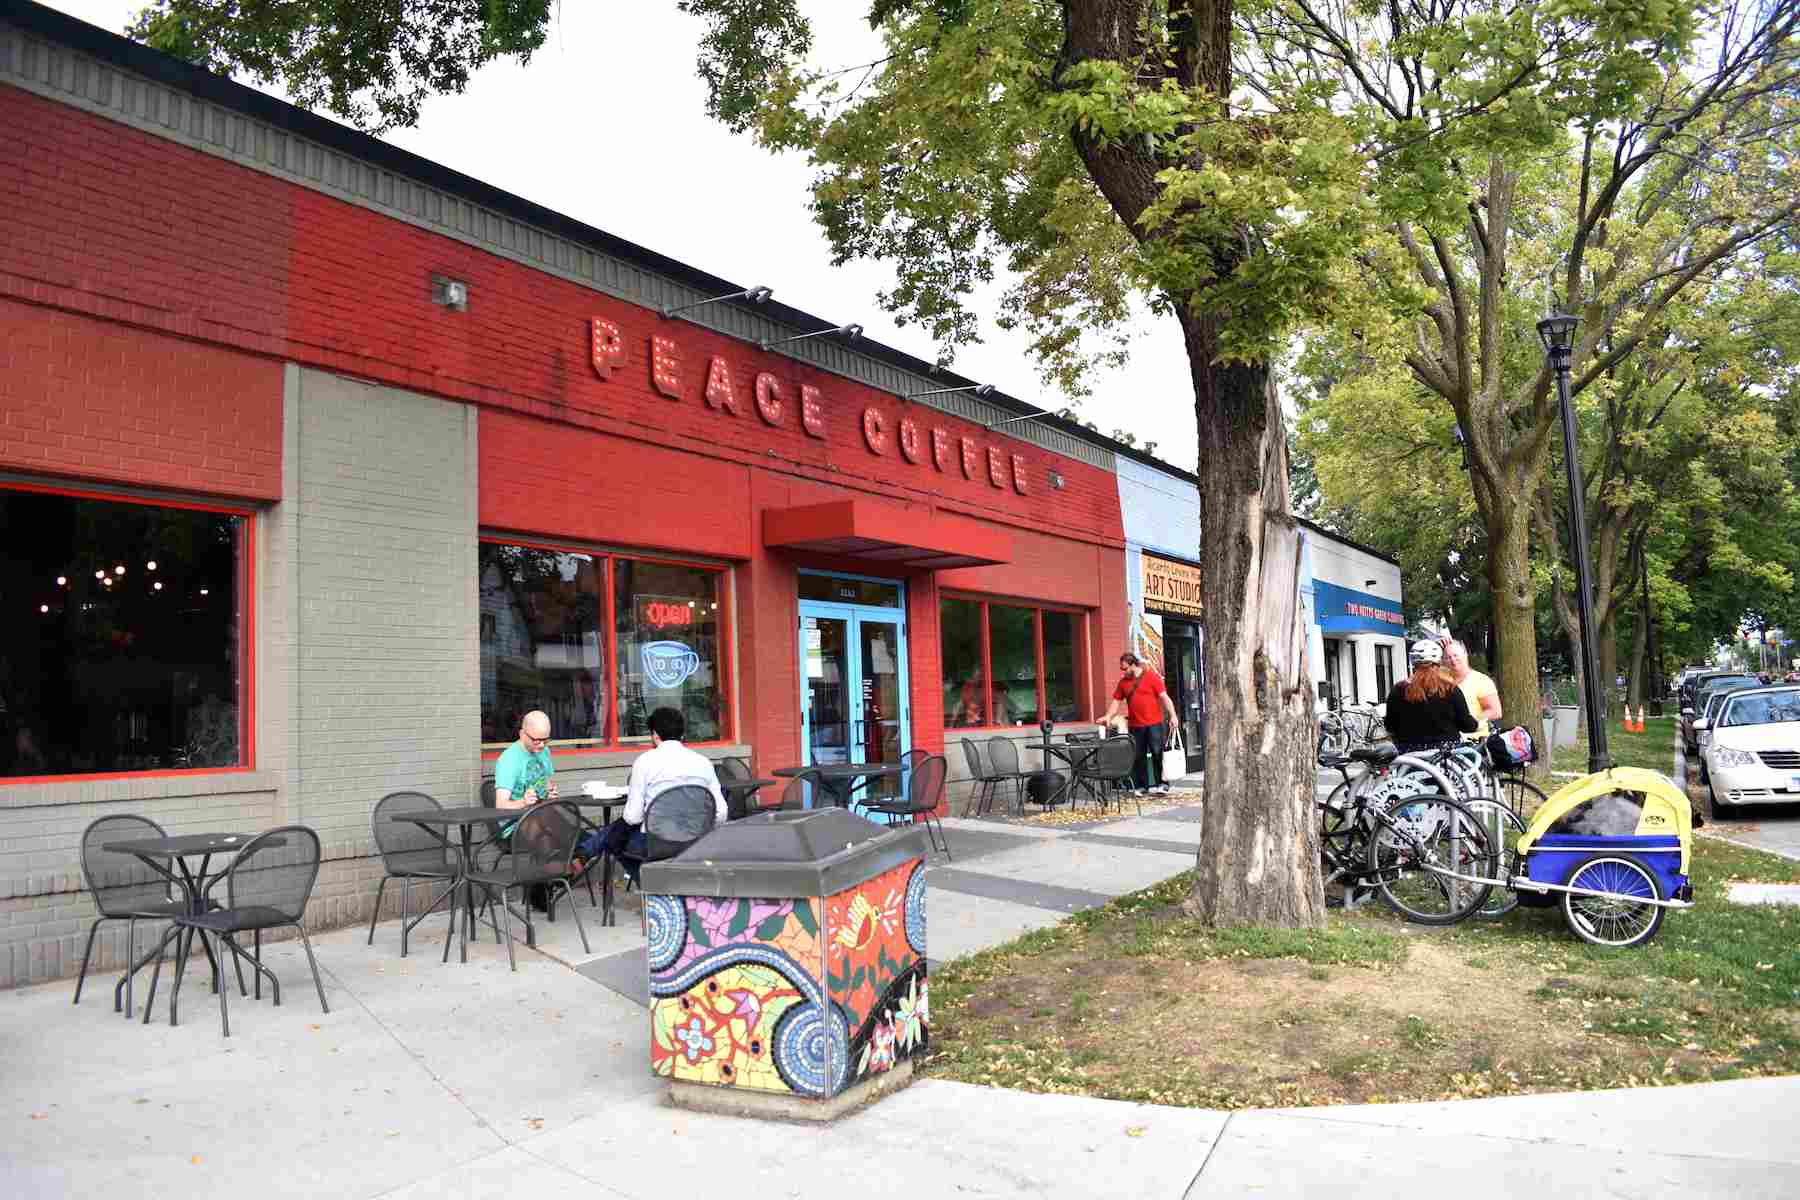 Exterior of Peace Coffee